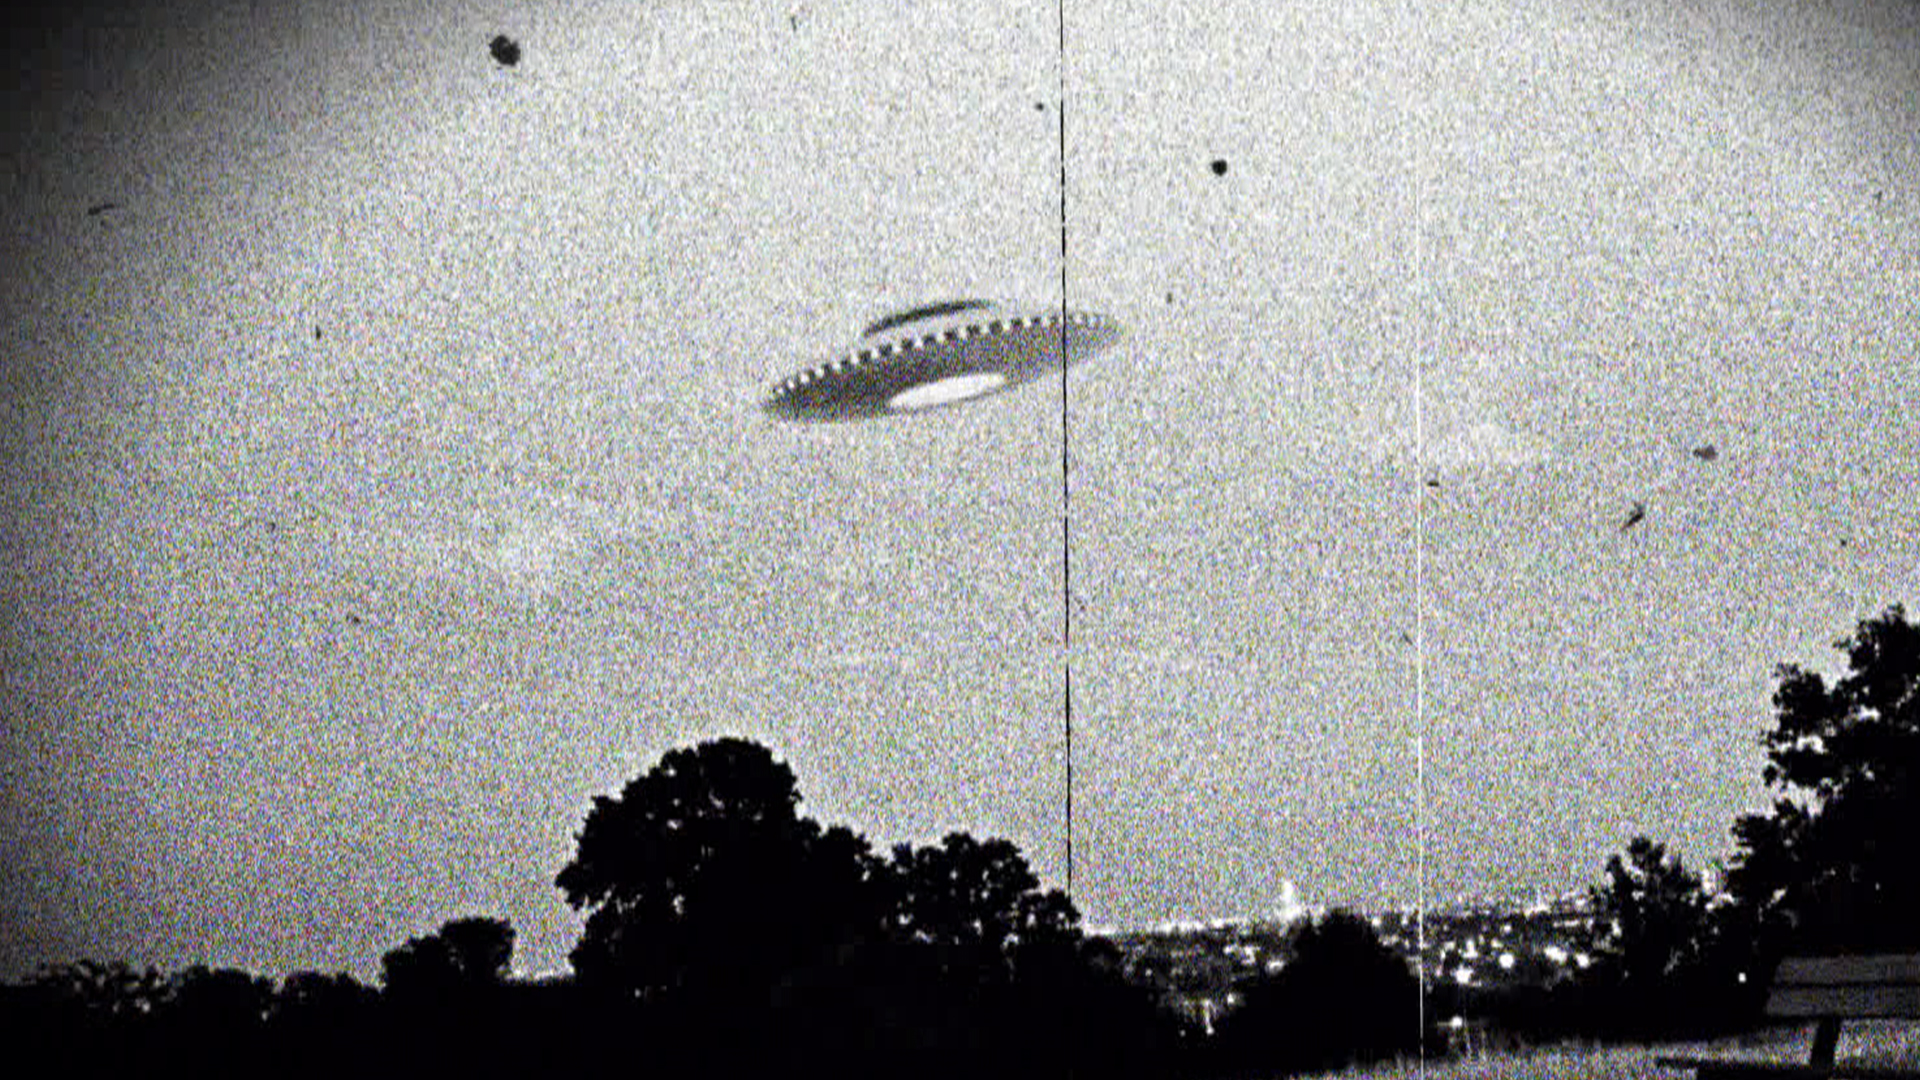 UFO Fascination Says More About Humans Than About Aliens NBC News